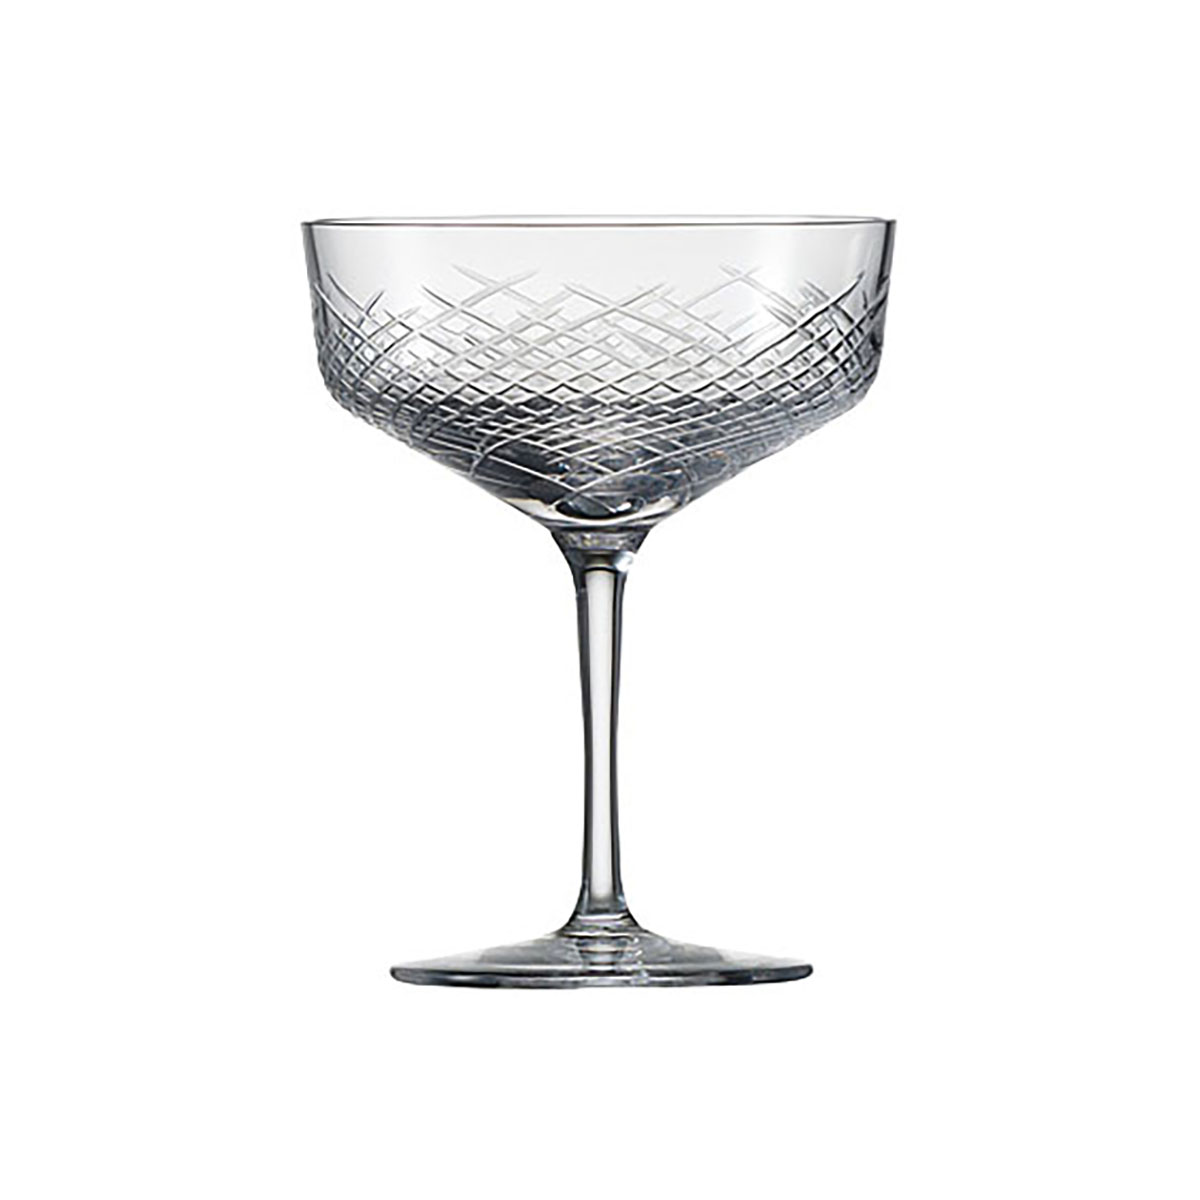 Zwiesel 1872 Charles Schumann Hommage Comete Cocktail Cup Small, Pair